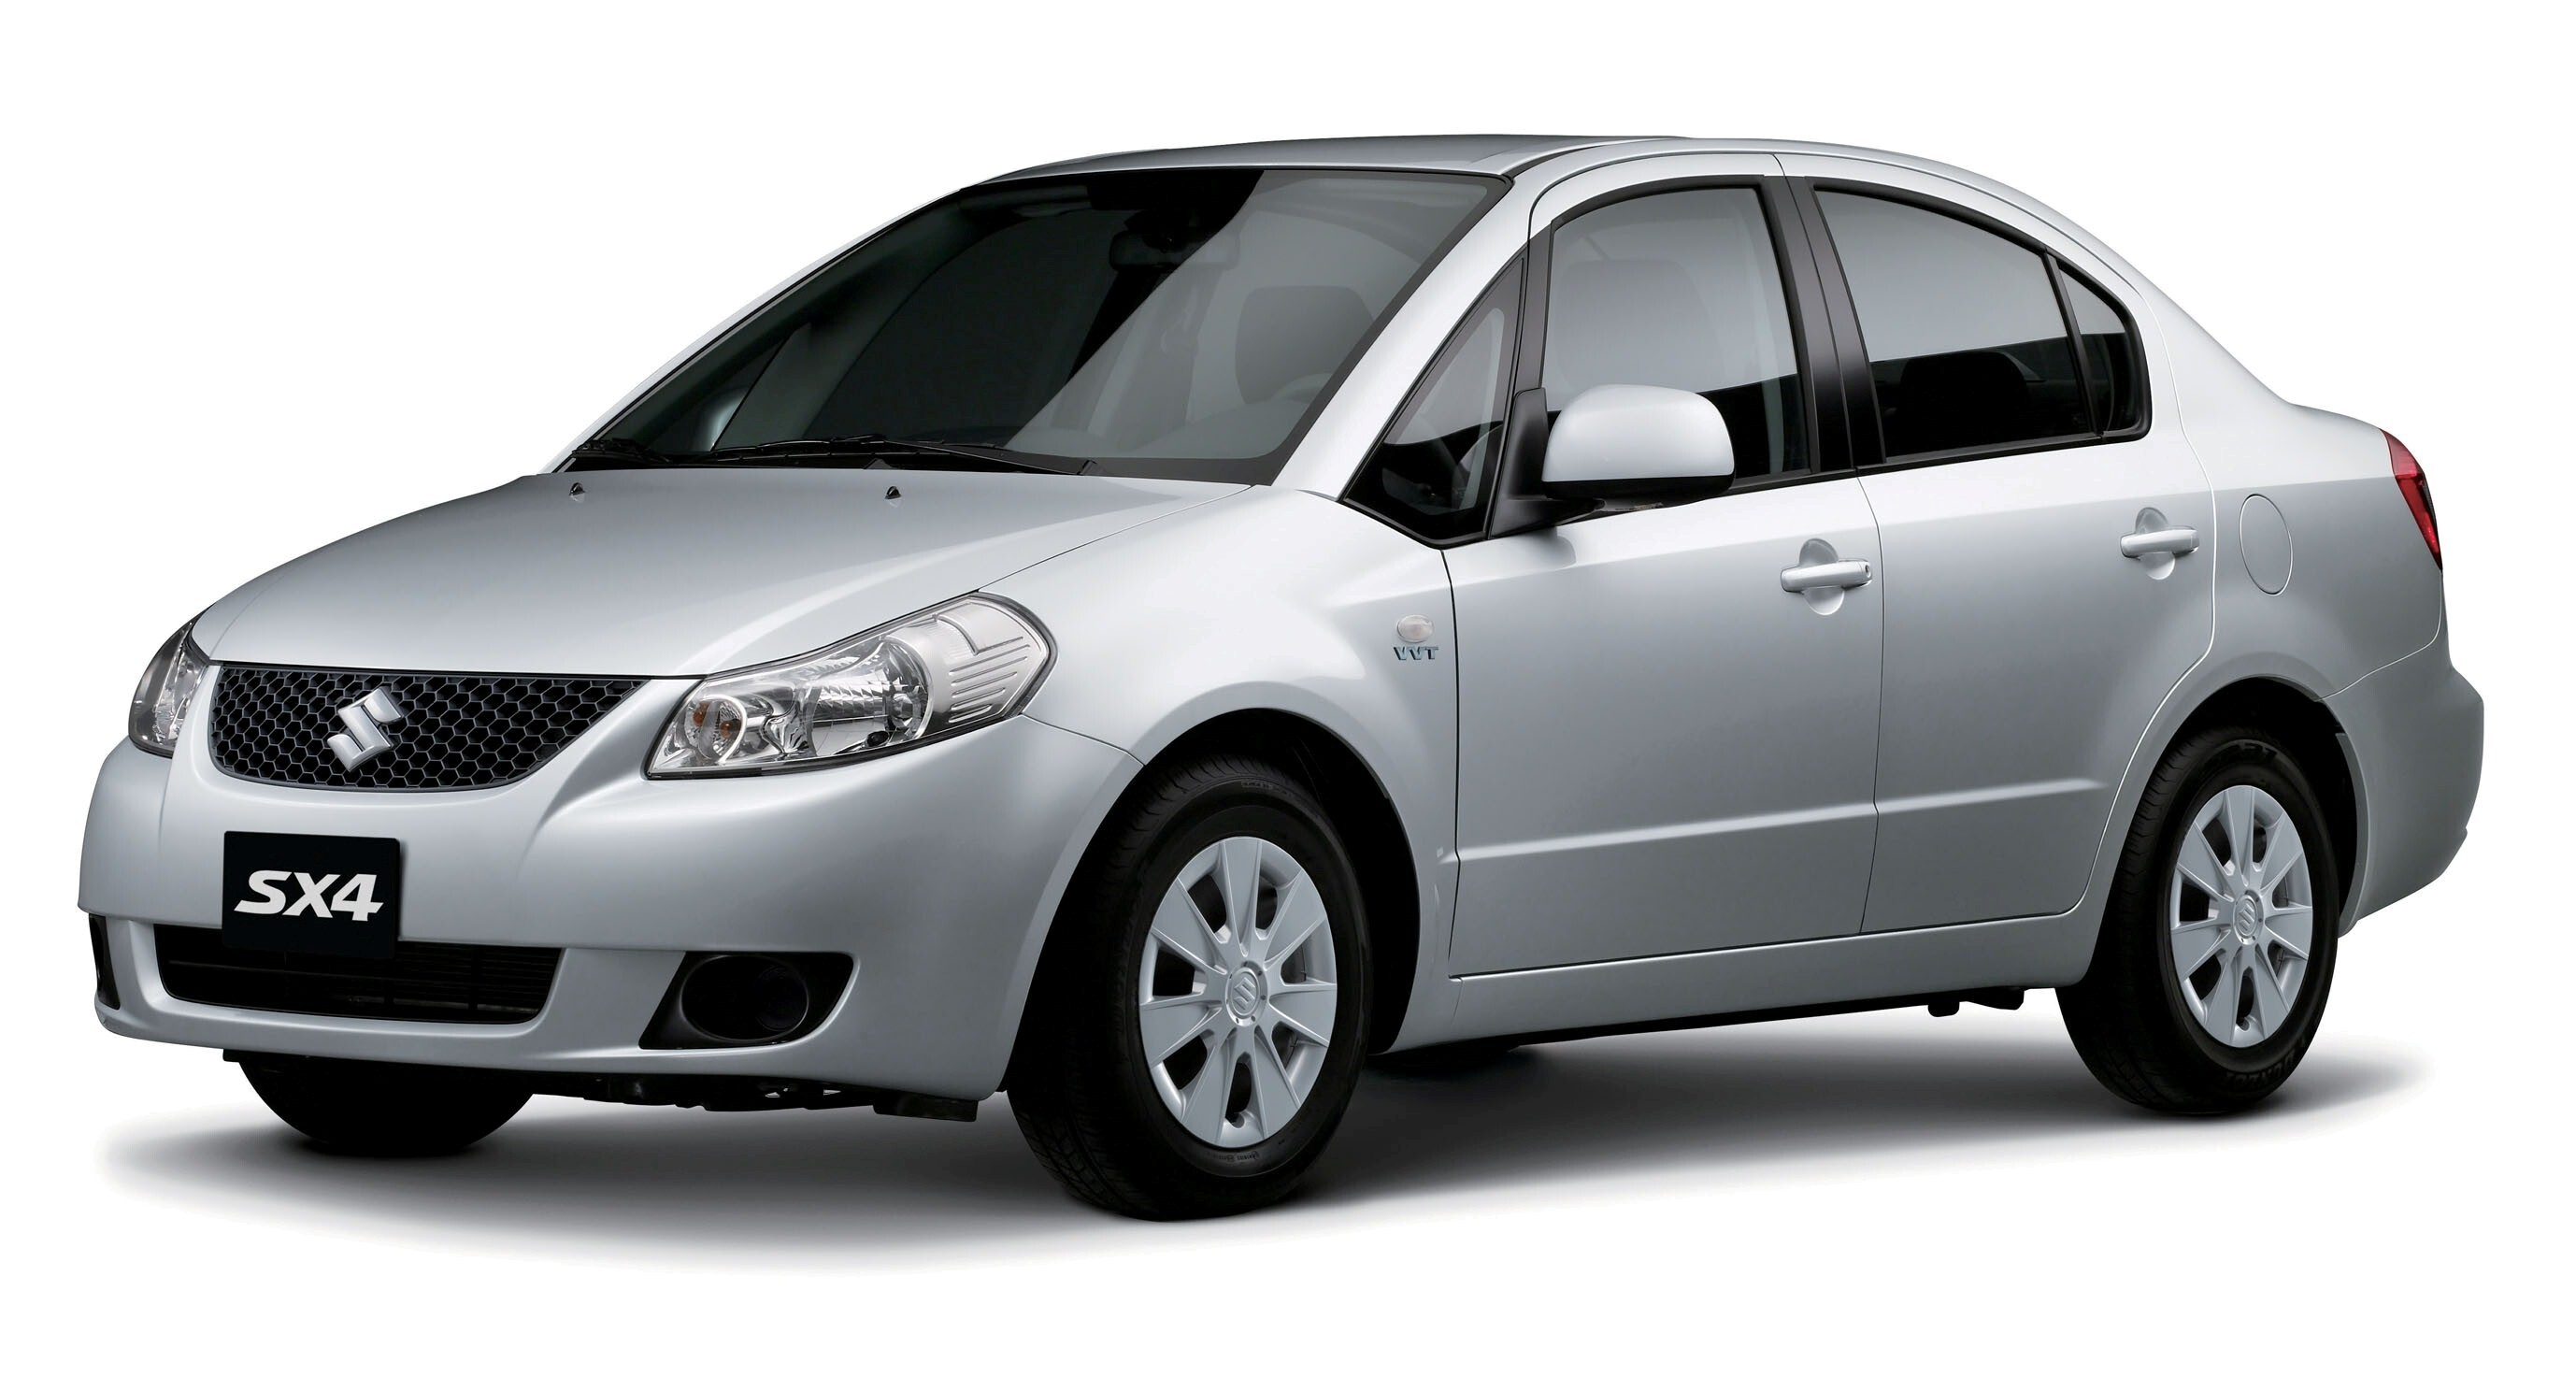 Silver Maruti Suzuki Sx4 Car Wallpaper Hd Wallpapers